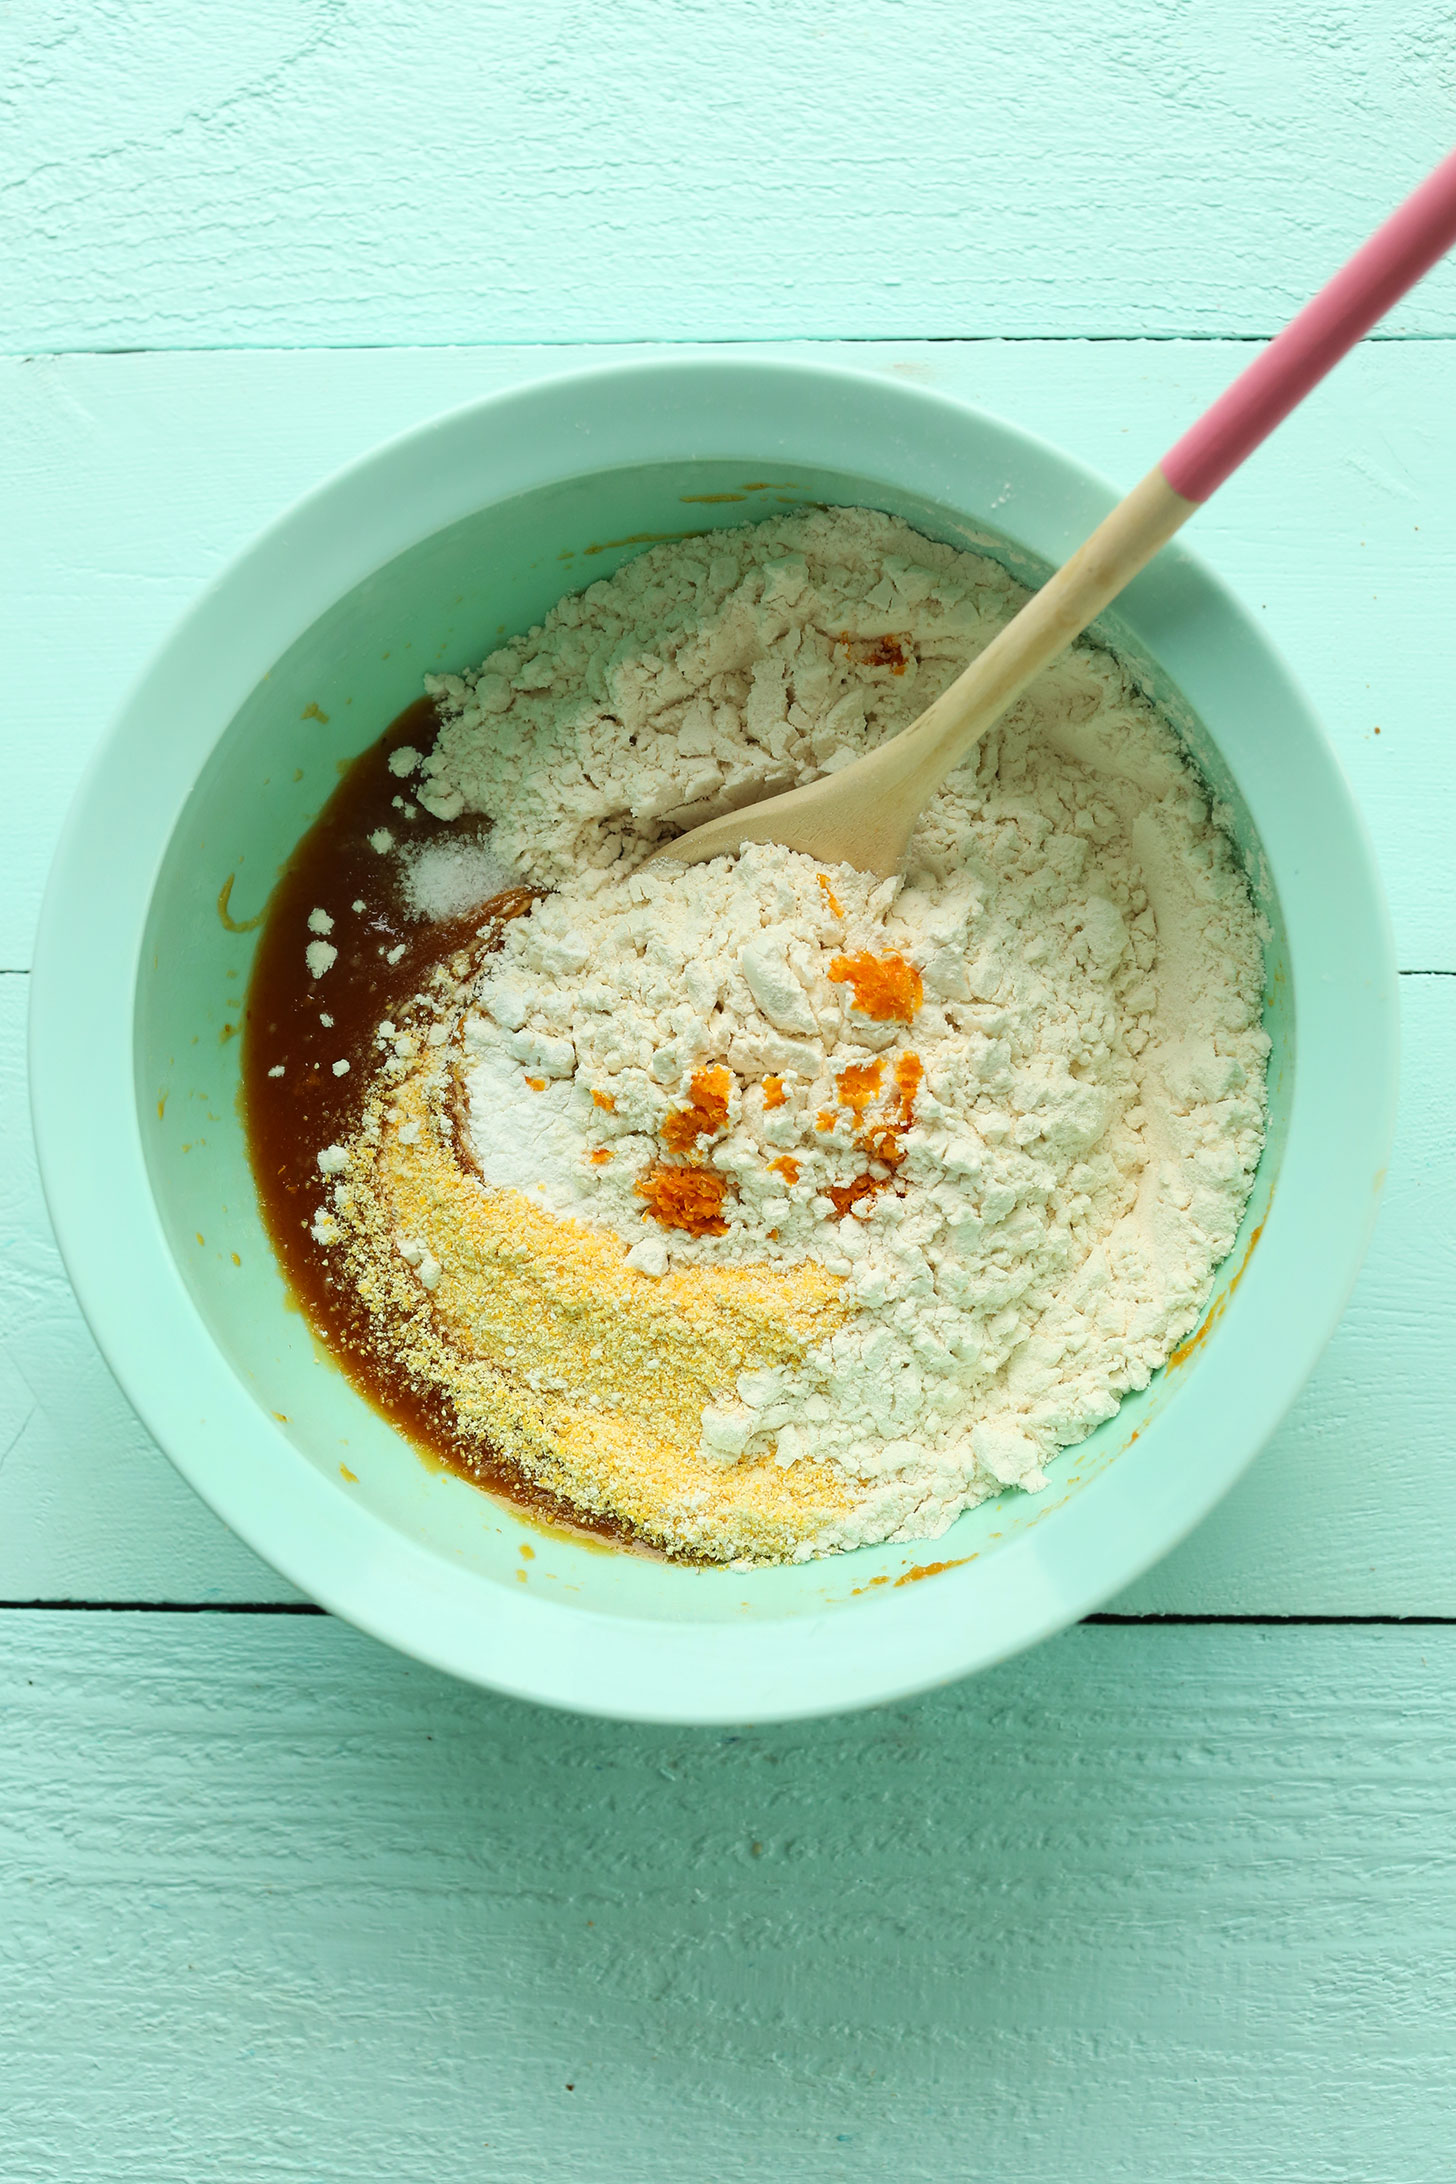 Mixing wet and dry ingredients together for our Easy Vegan Biscotti recipe